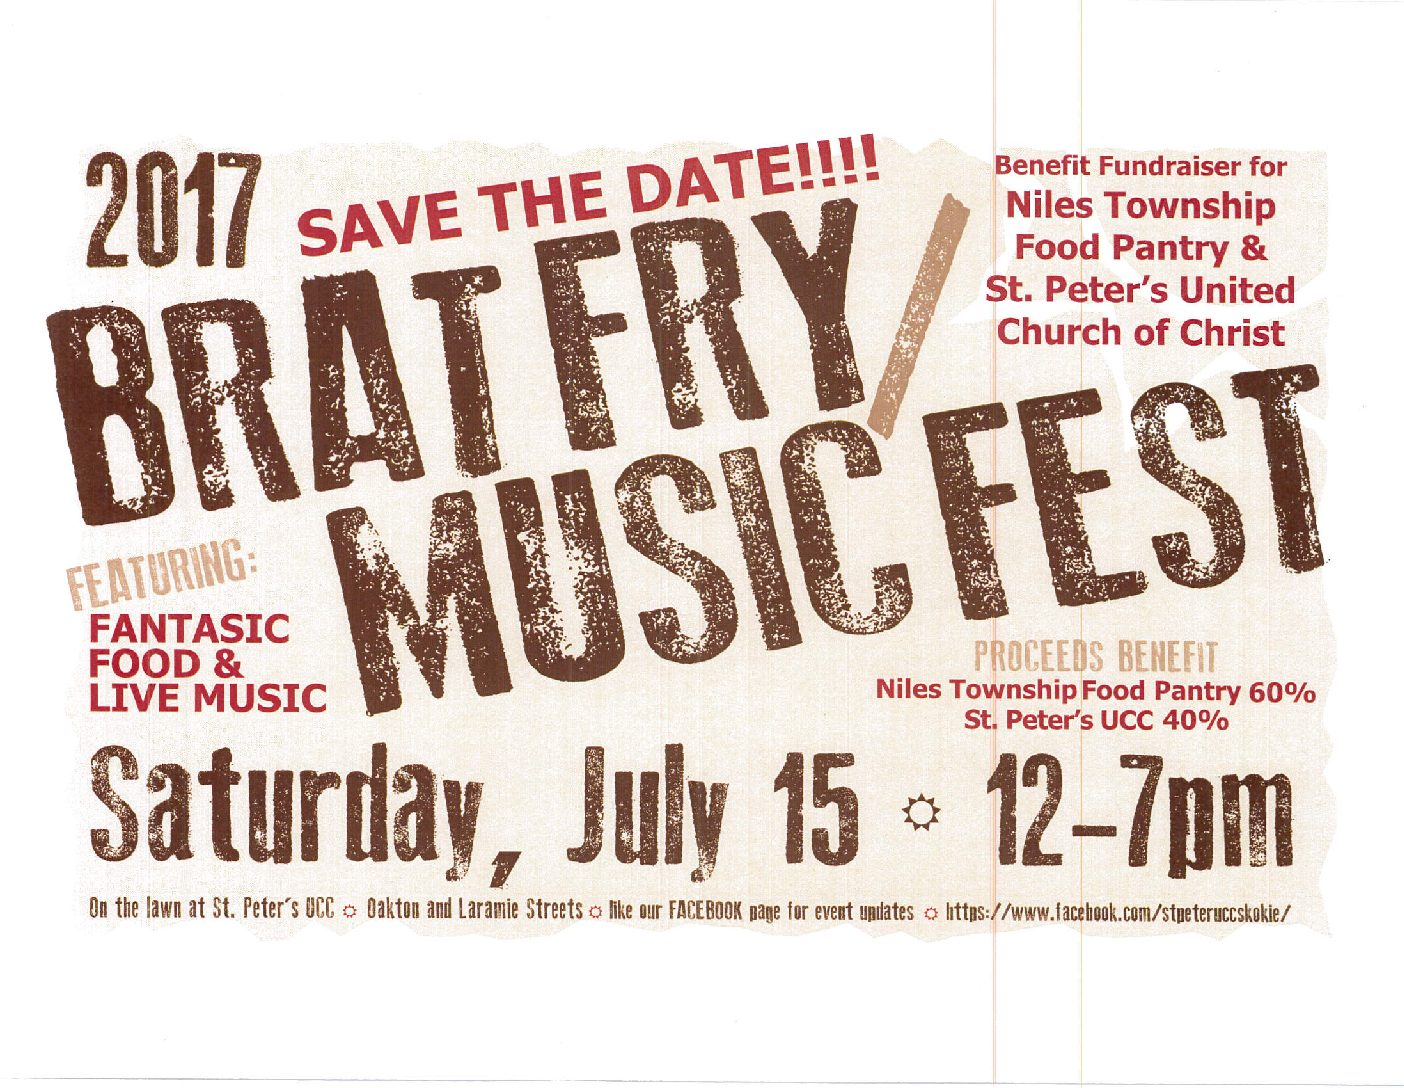 SAVE THE DATE – BRAT FRY ON JULY 15th